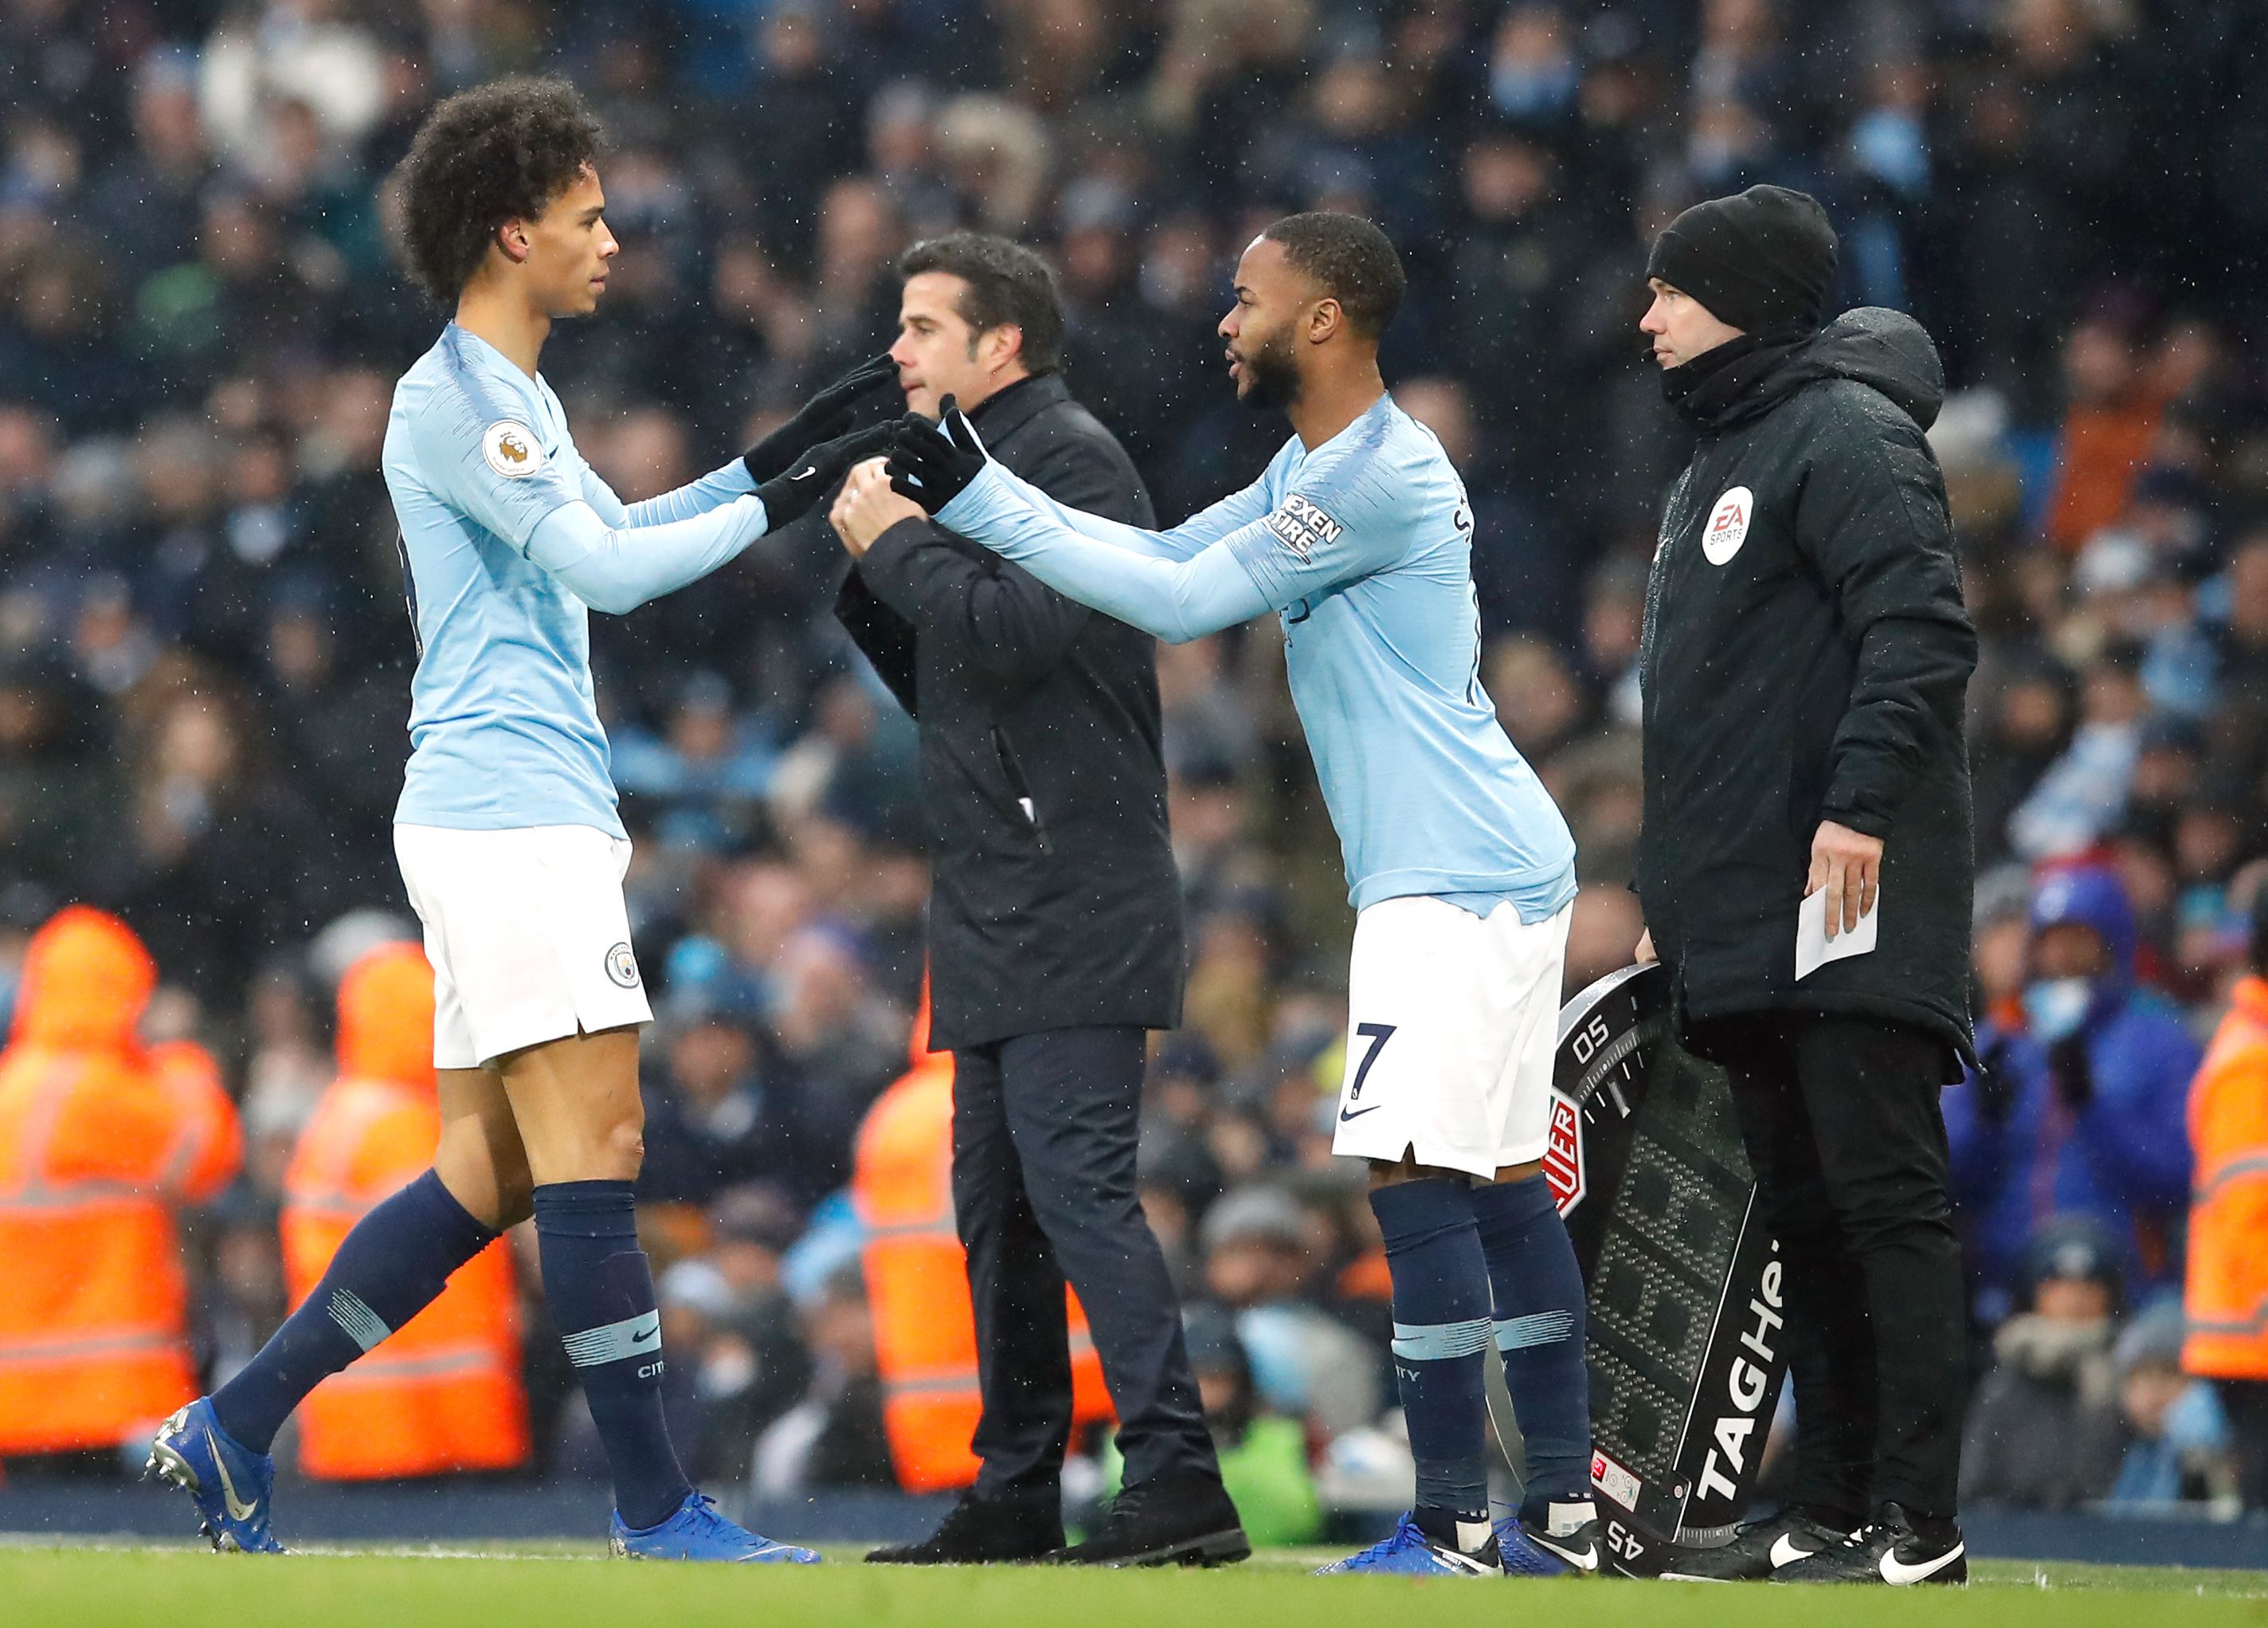 Sterling and Sane have to share duties at the Etihad. Image: PA Images